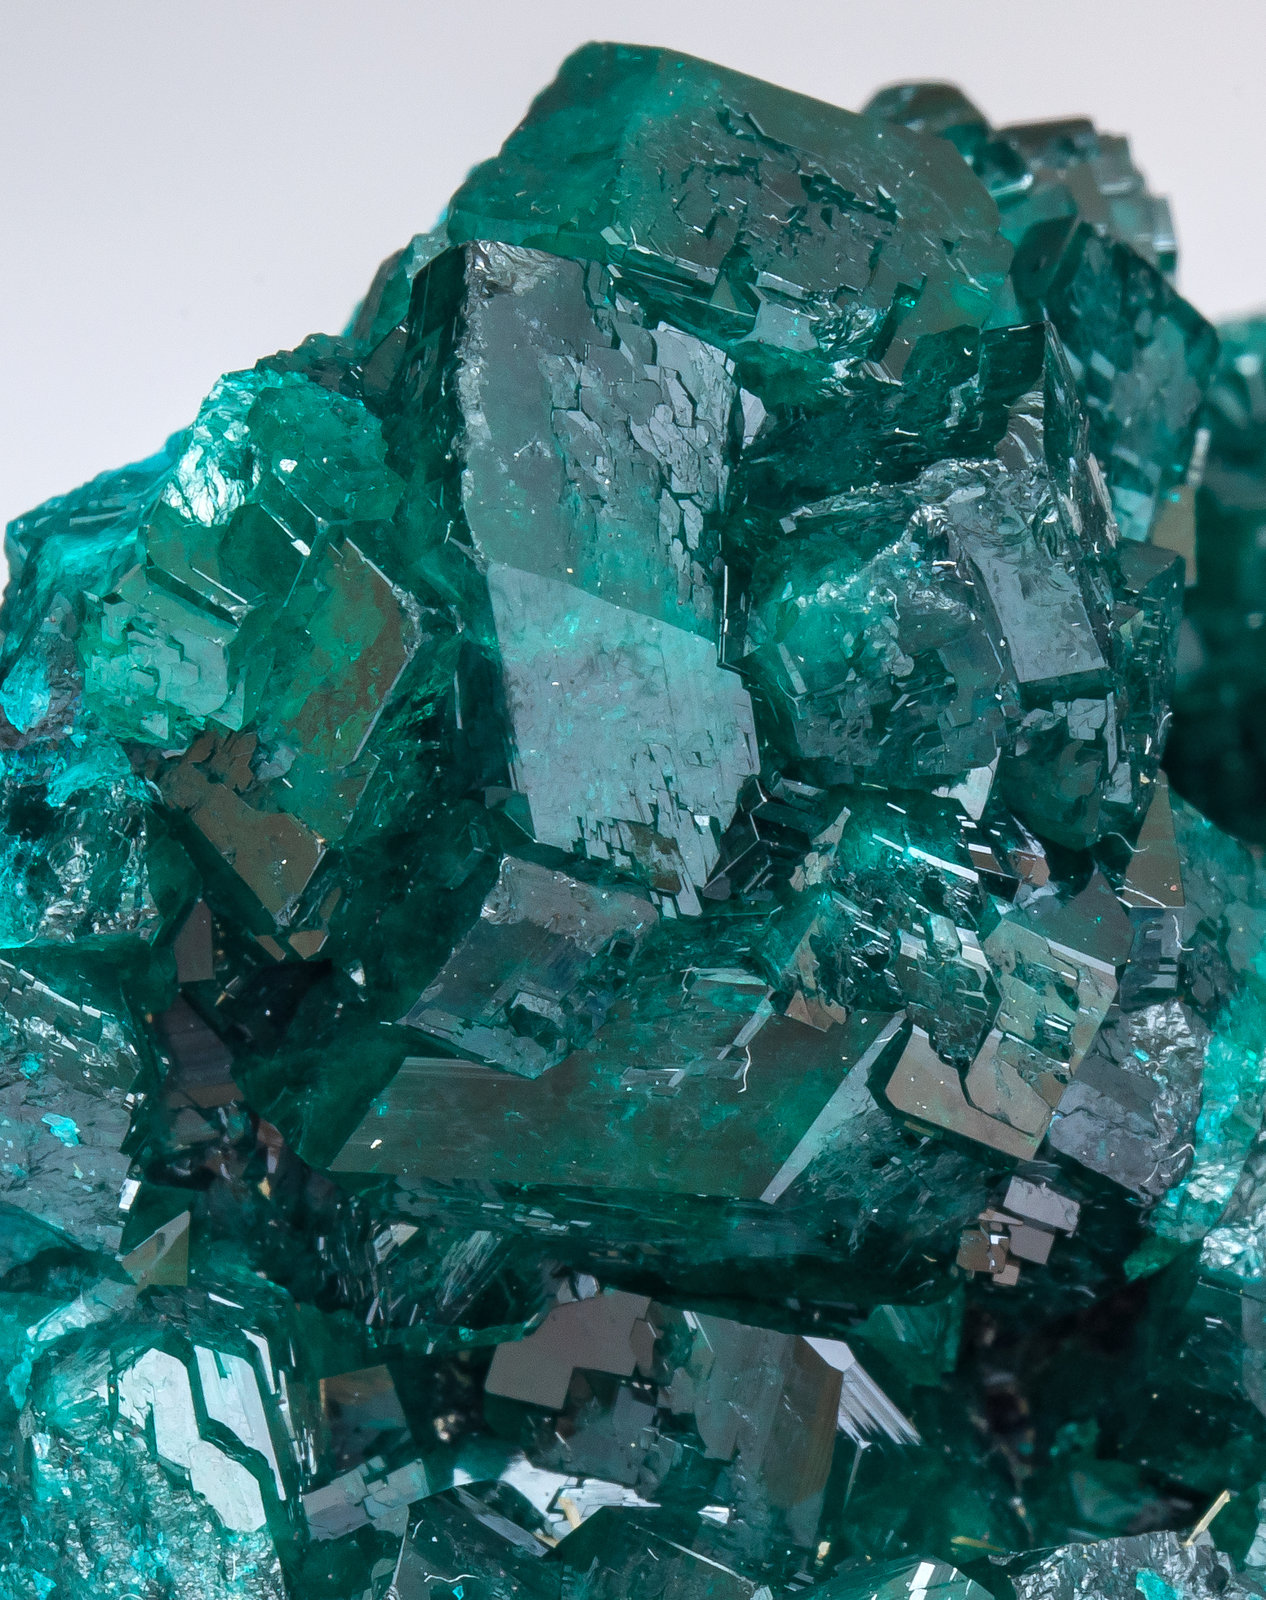 specimens/s_imagesAM4/Dioptase-NV27AM4d.jpg